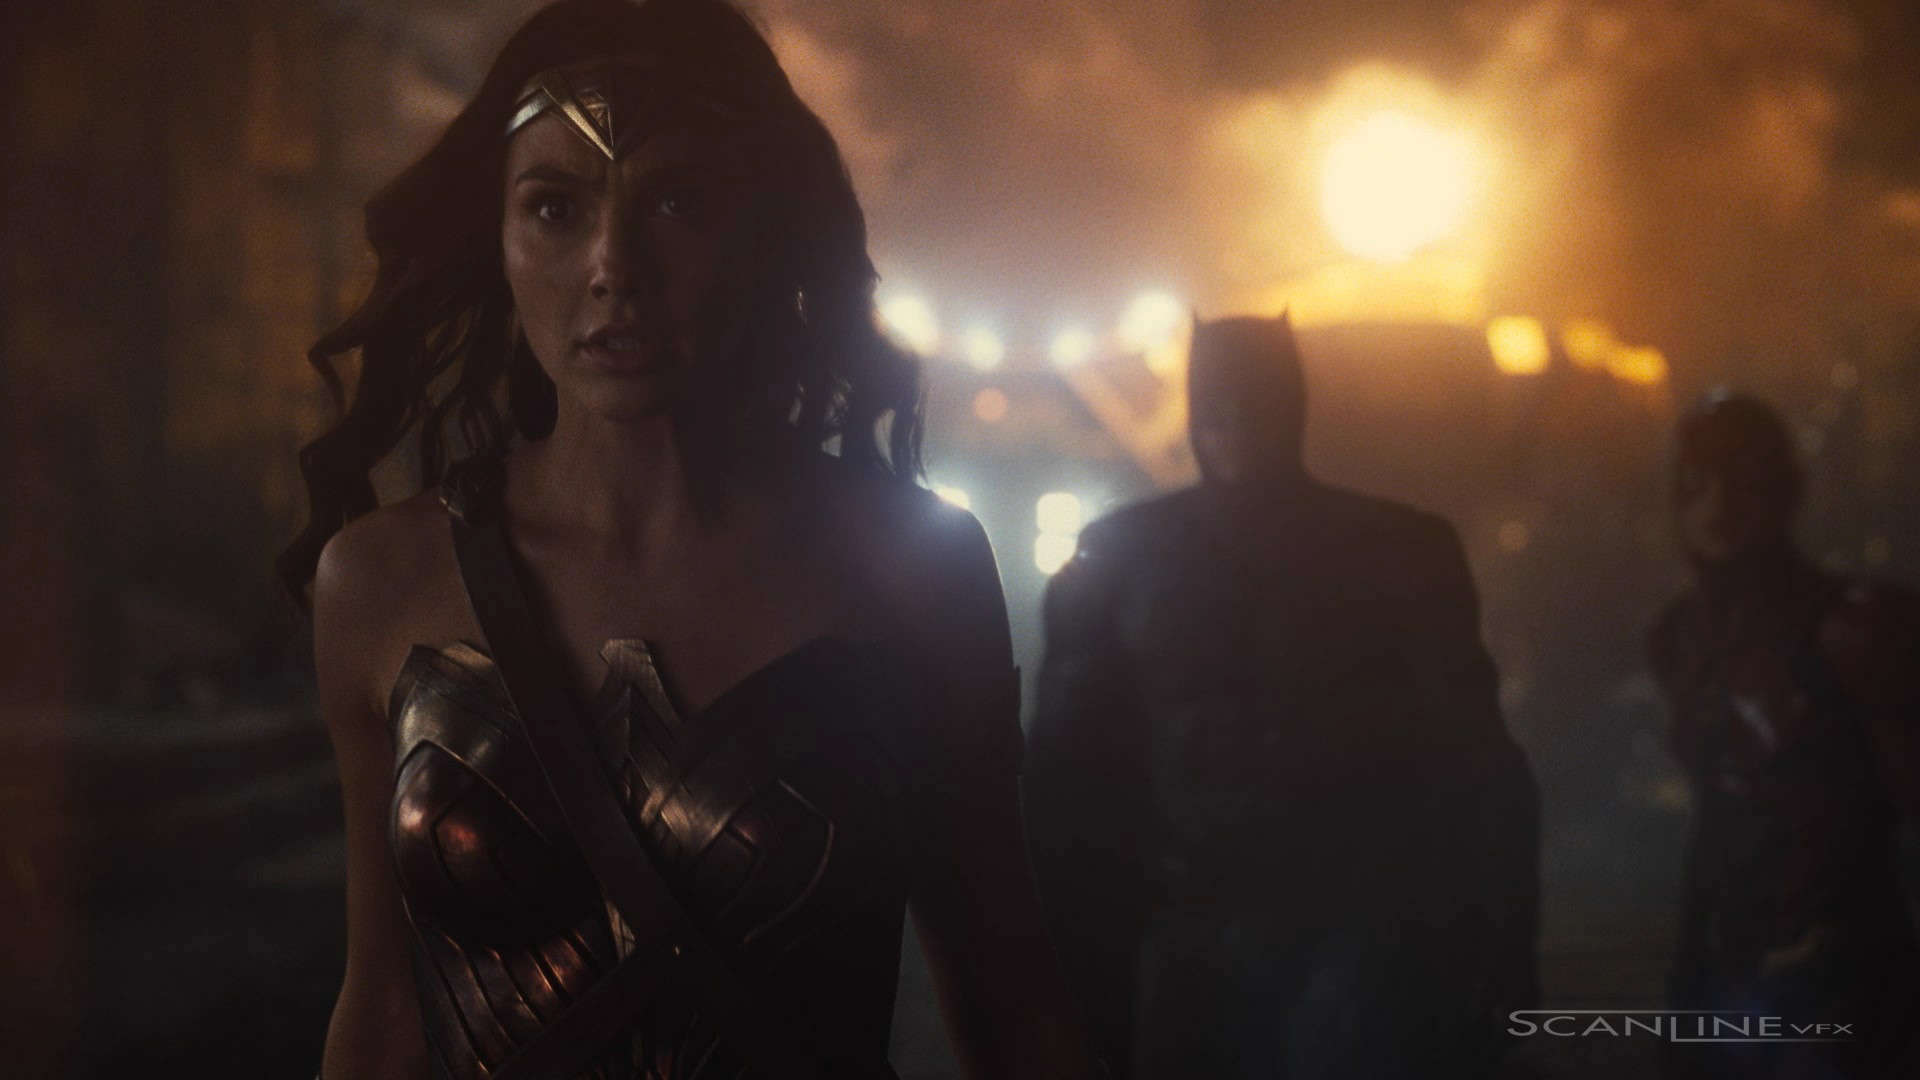 Compositing and integration work I have done in 2017 at Scanline VFX, as a Compositor. Featuring: Justice League  CG  + Green Screen Integration.